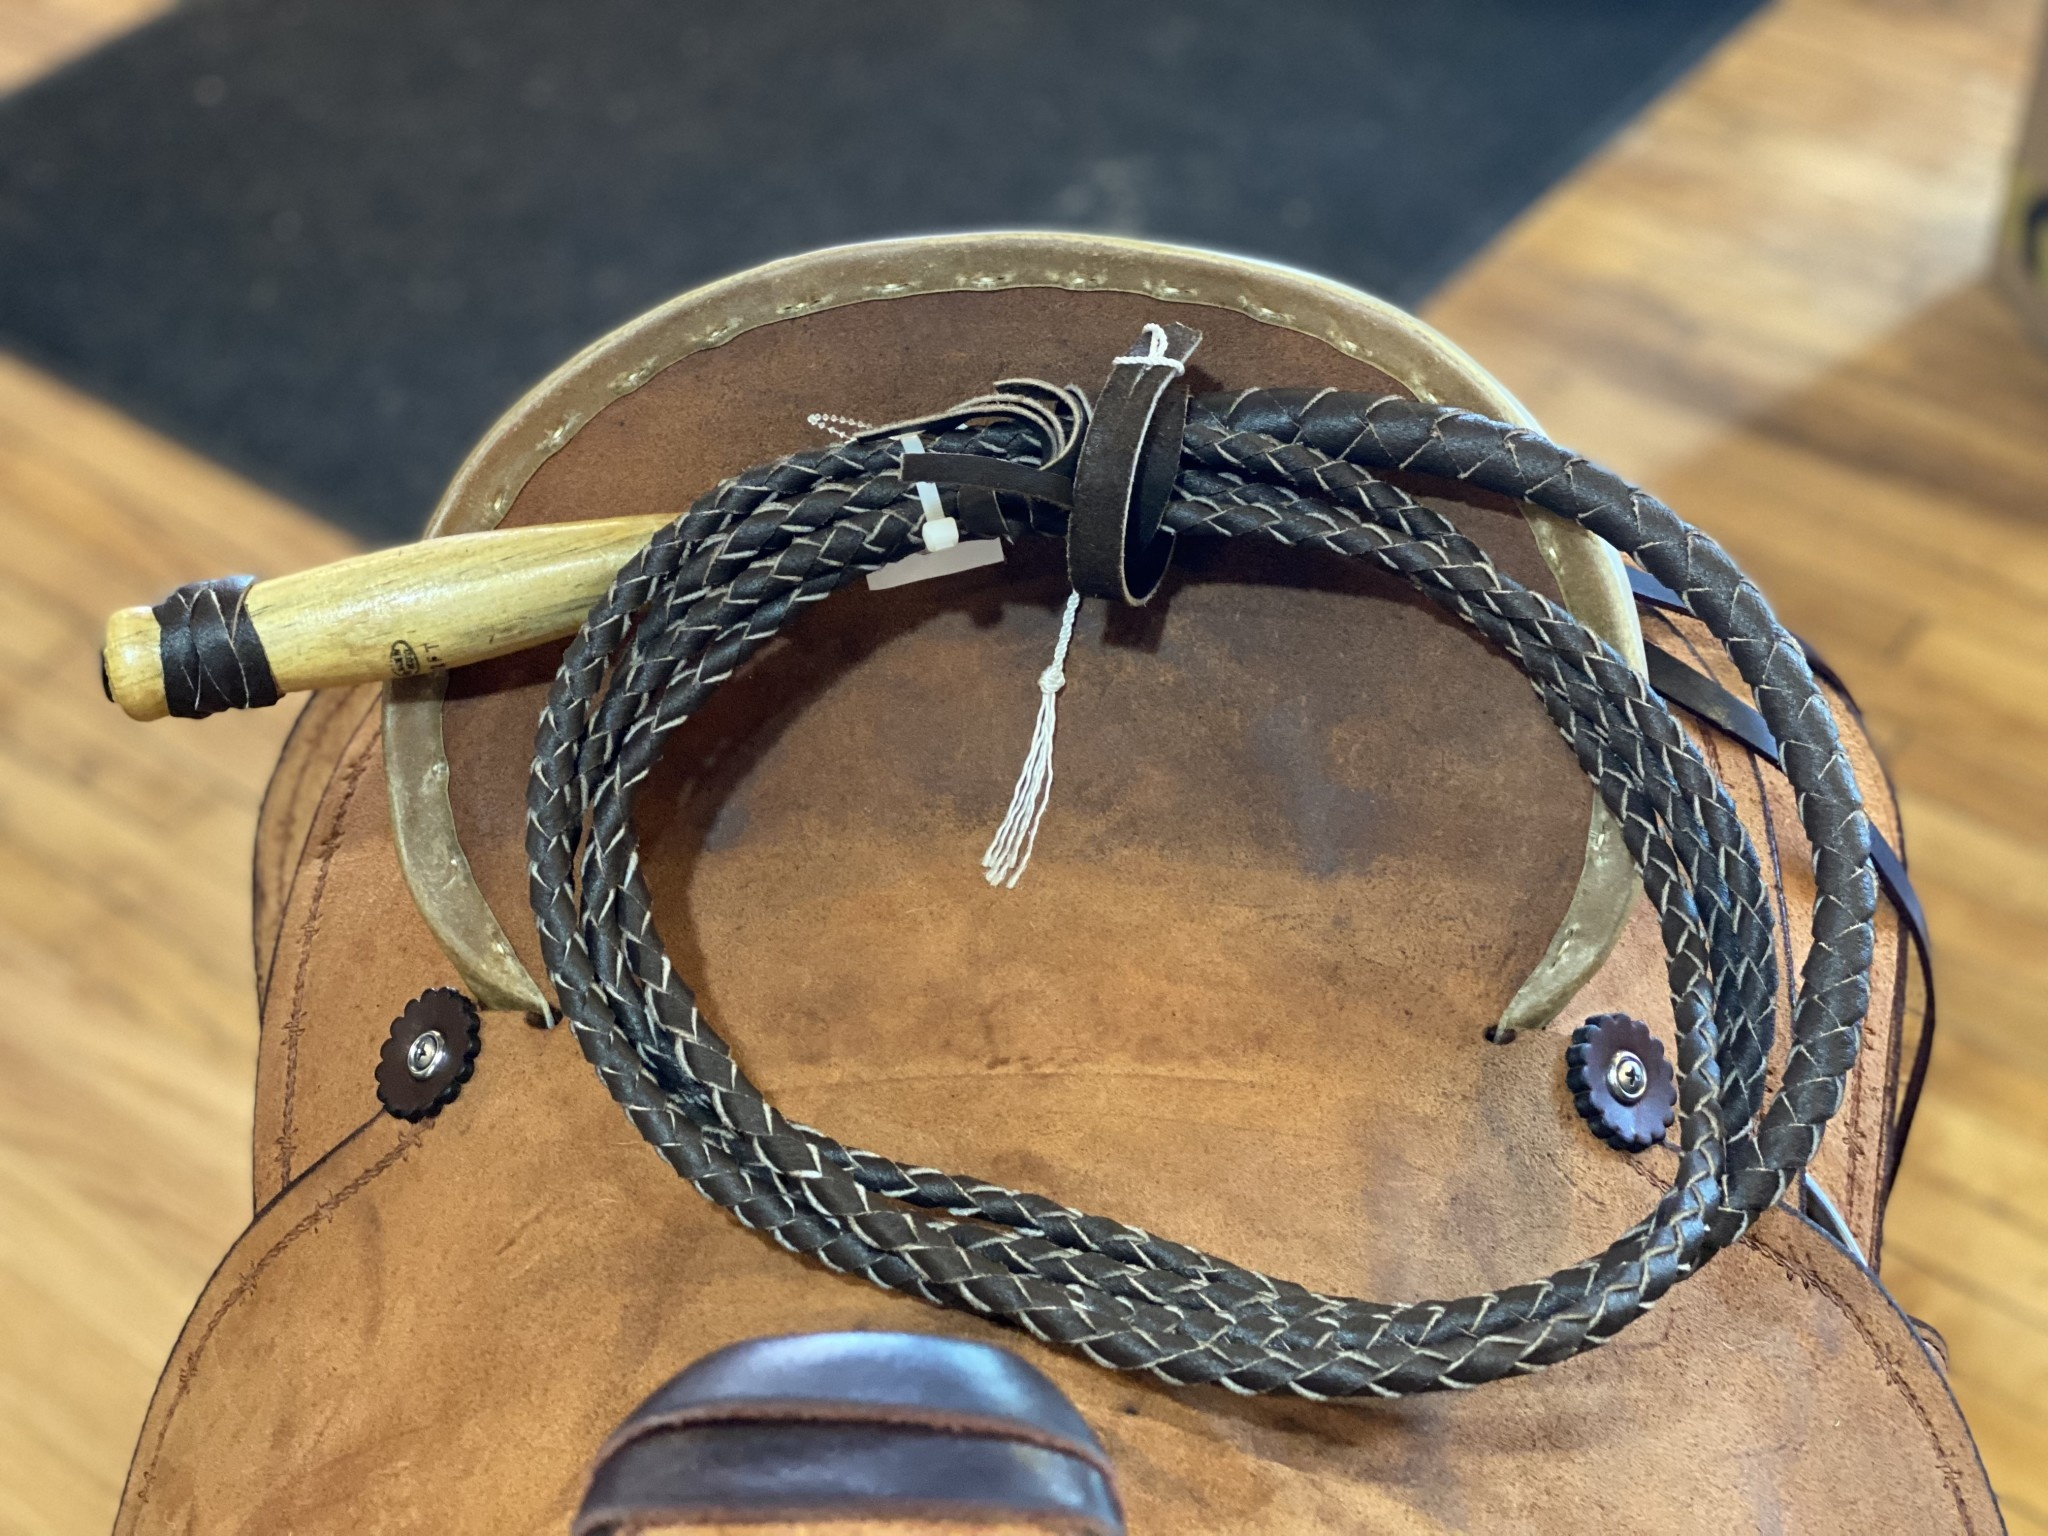 Circle L Braided Leather Bull Whip, Wood Handle - 12' Long